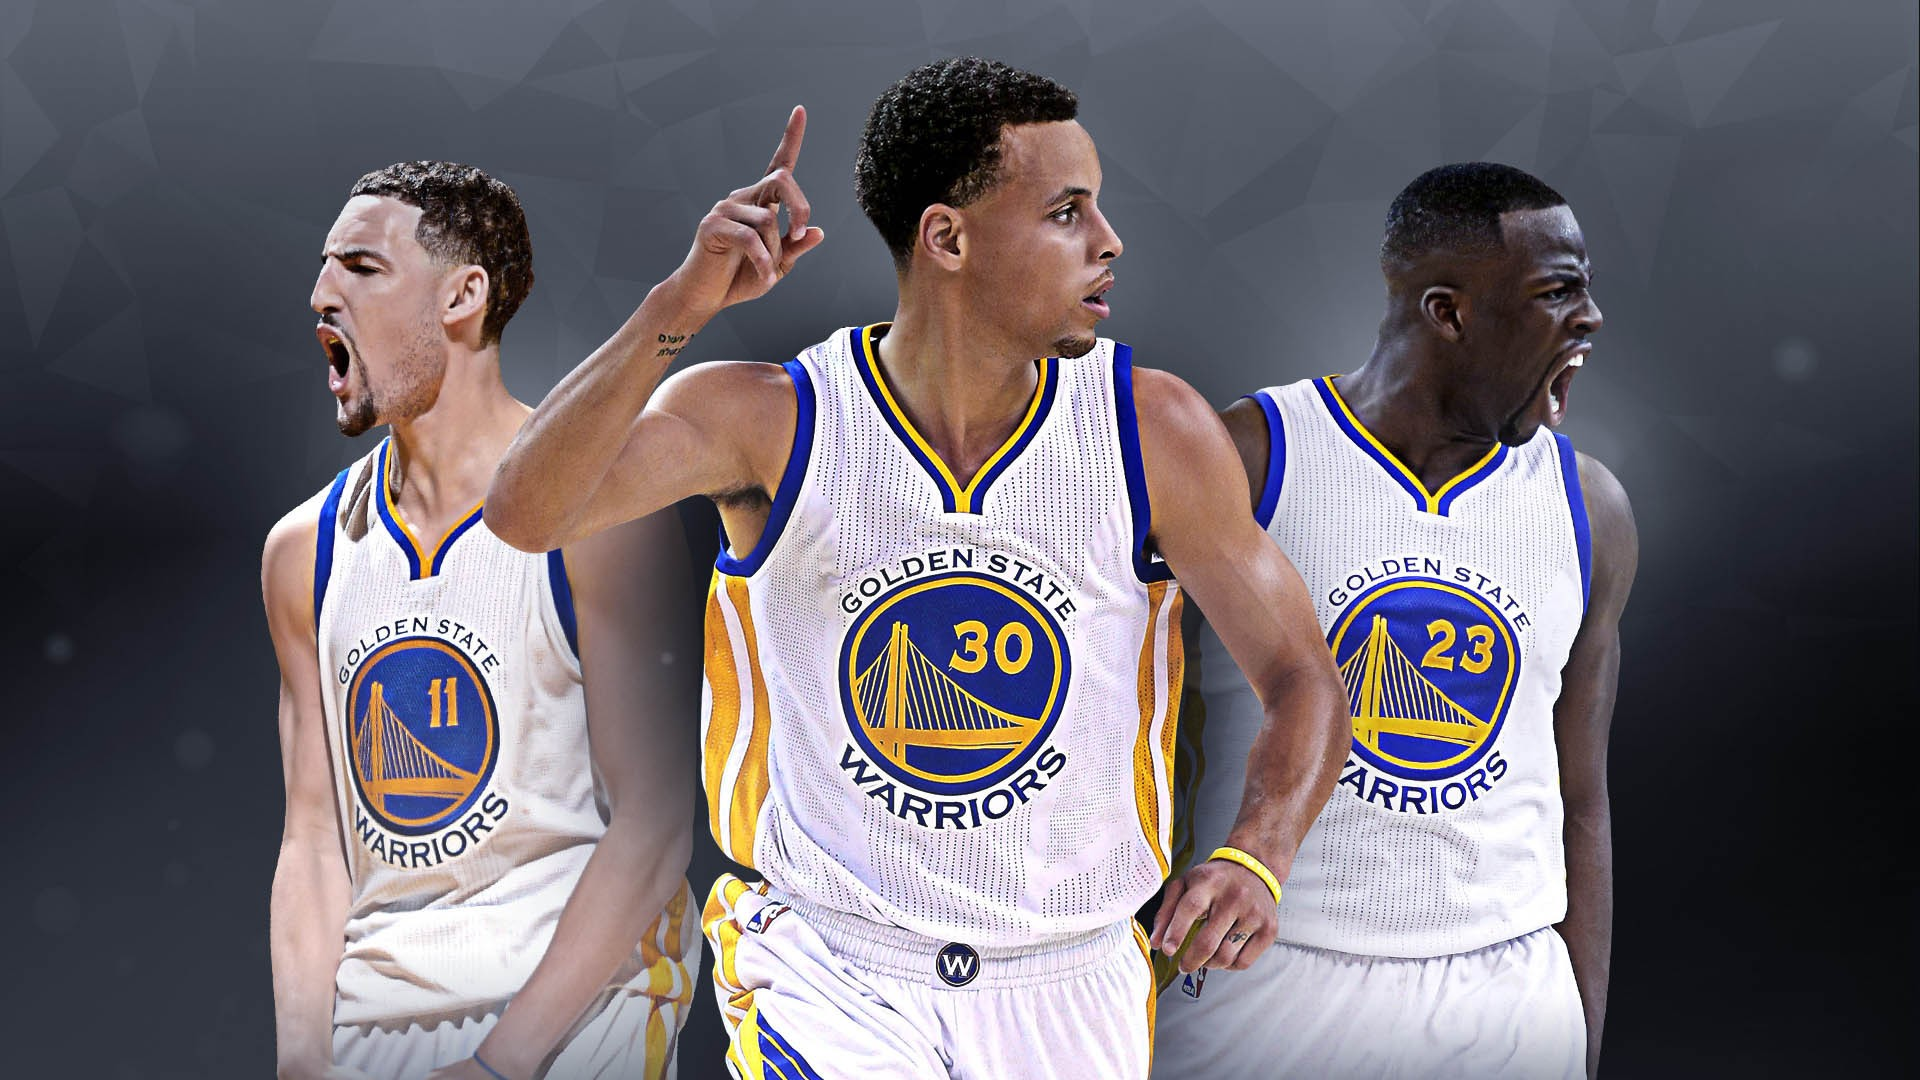 Pictures of Golden State Warriors